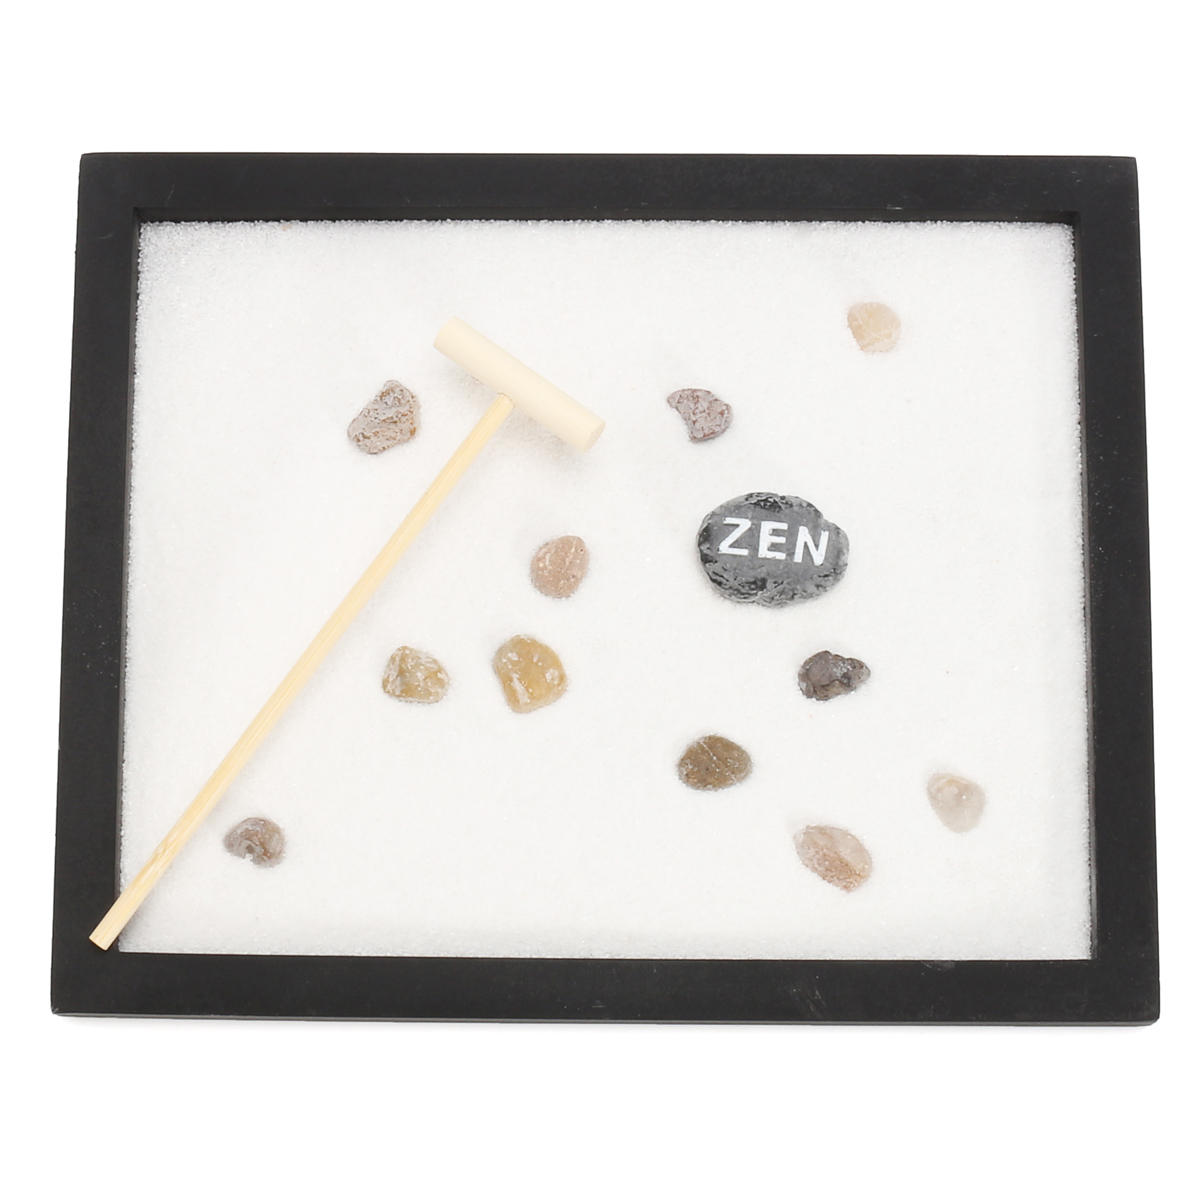 Table Top Zen Garden Yoga Meditation Zen Garden Japanese Rock Gardens Kits Feng Shui Decor Sand Table Top Rake